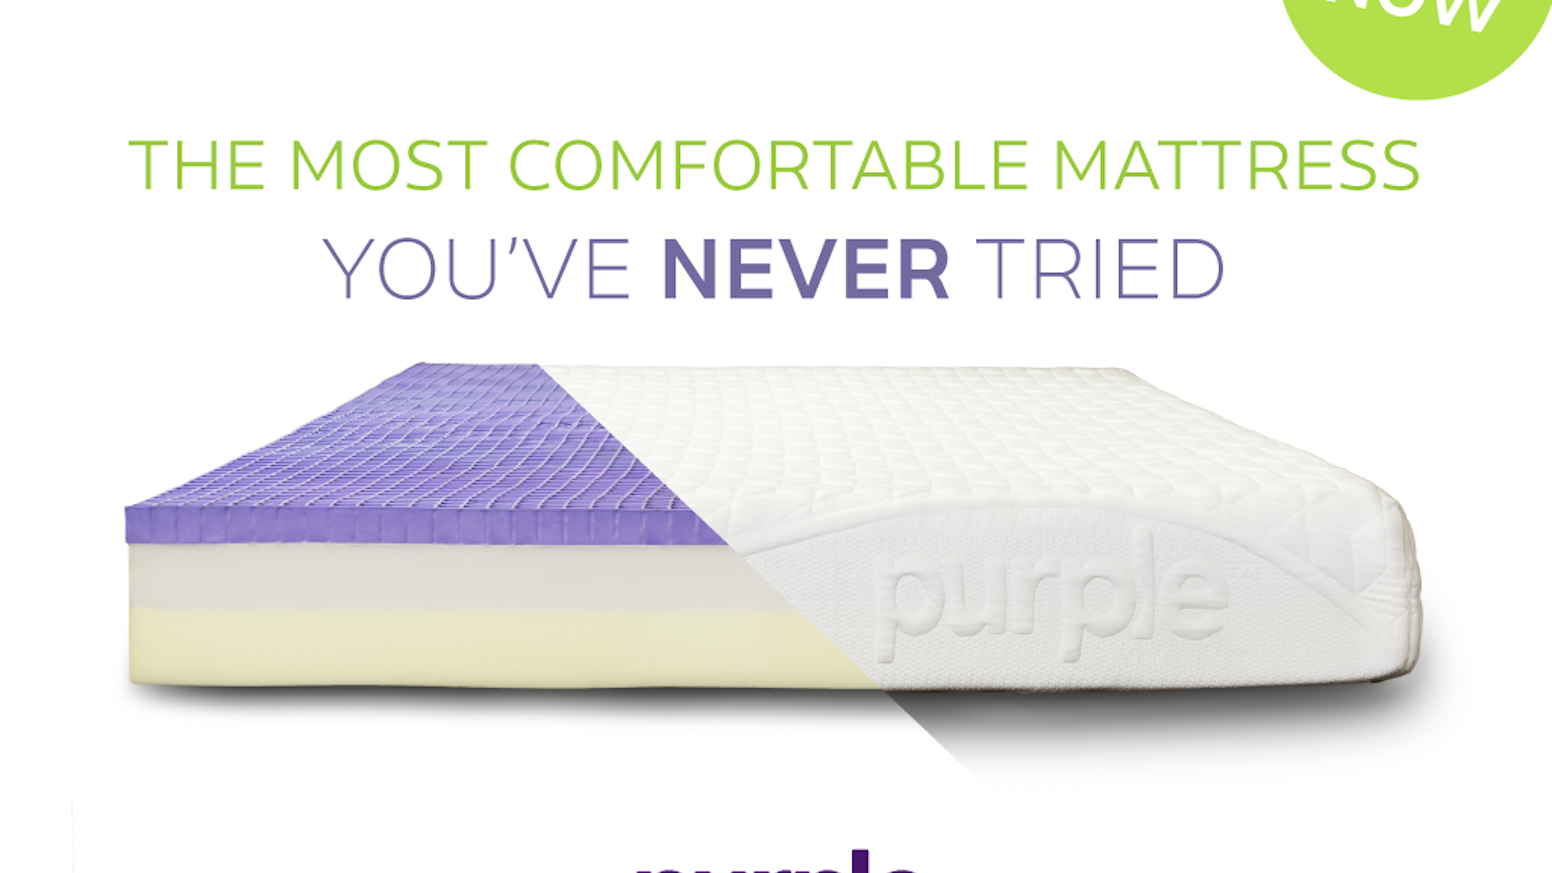 indents mattress more with make a cuddle comfortable cuddling comforter foam to